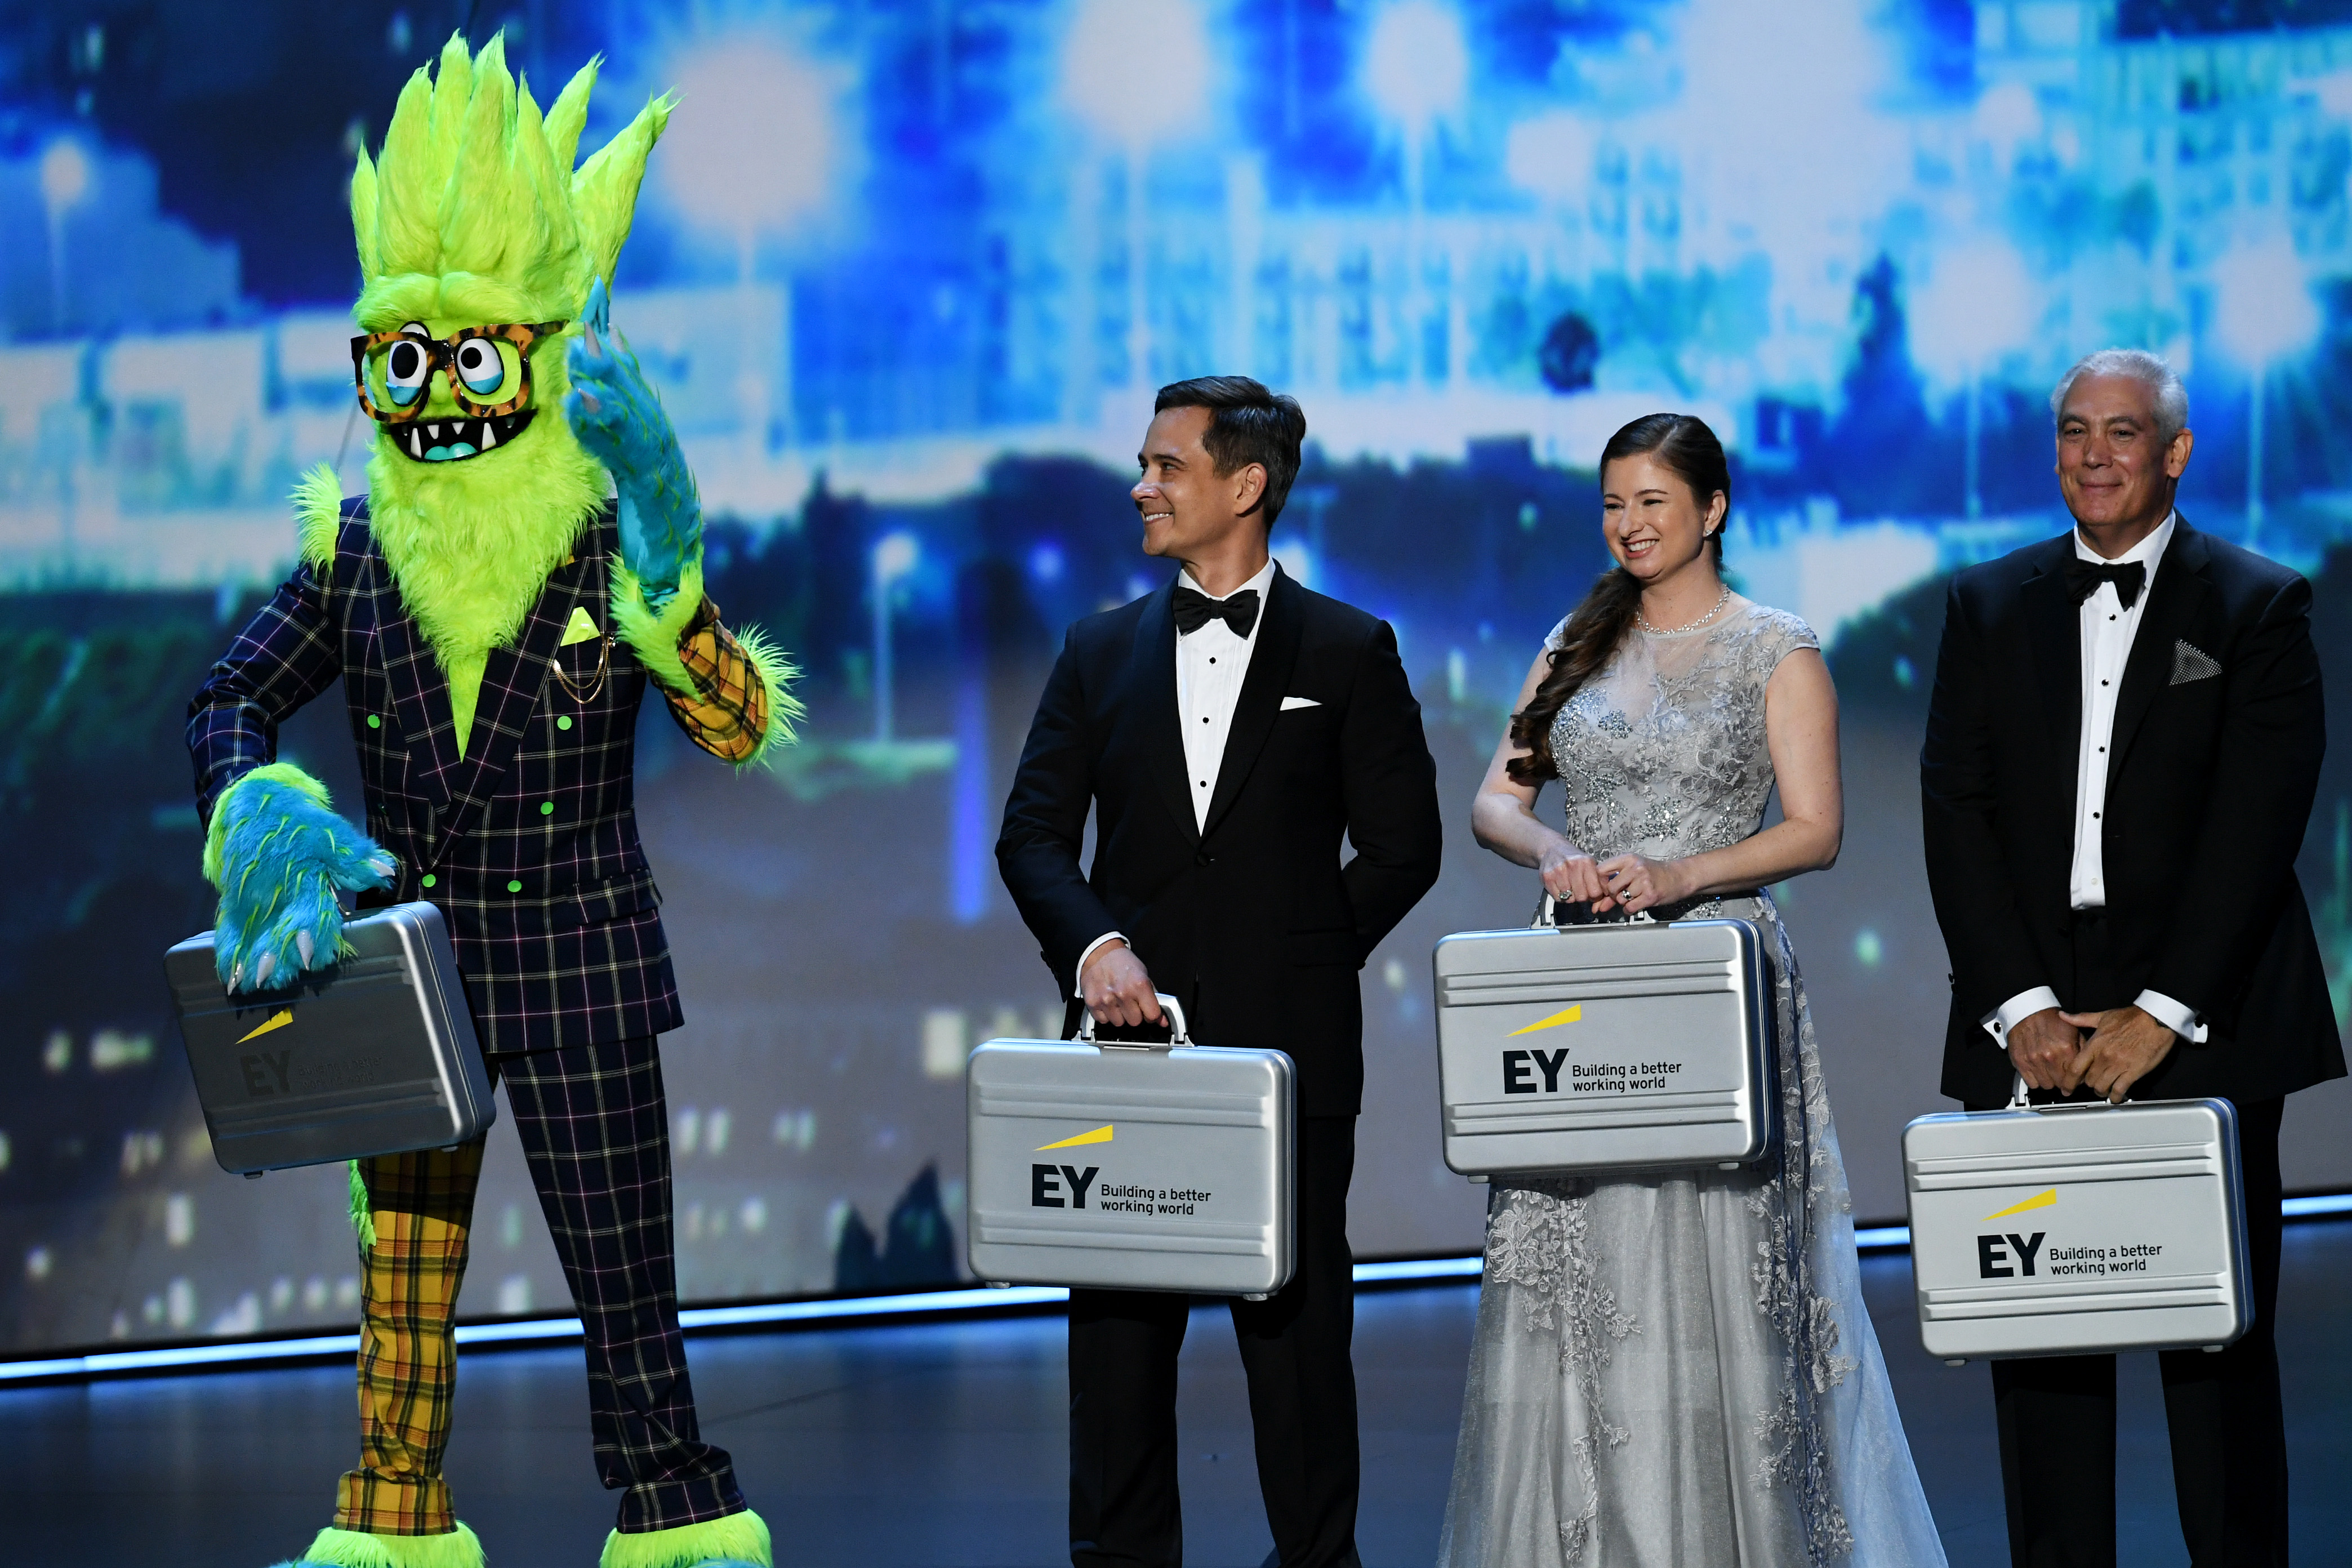 A character from 'The Masked Singer' and Ernst & Young representatives appear onstage during the 71st Emmy Awards.